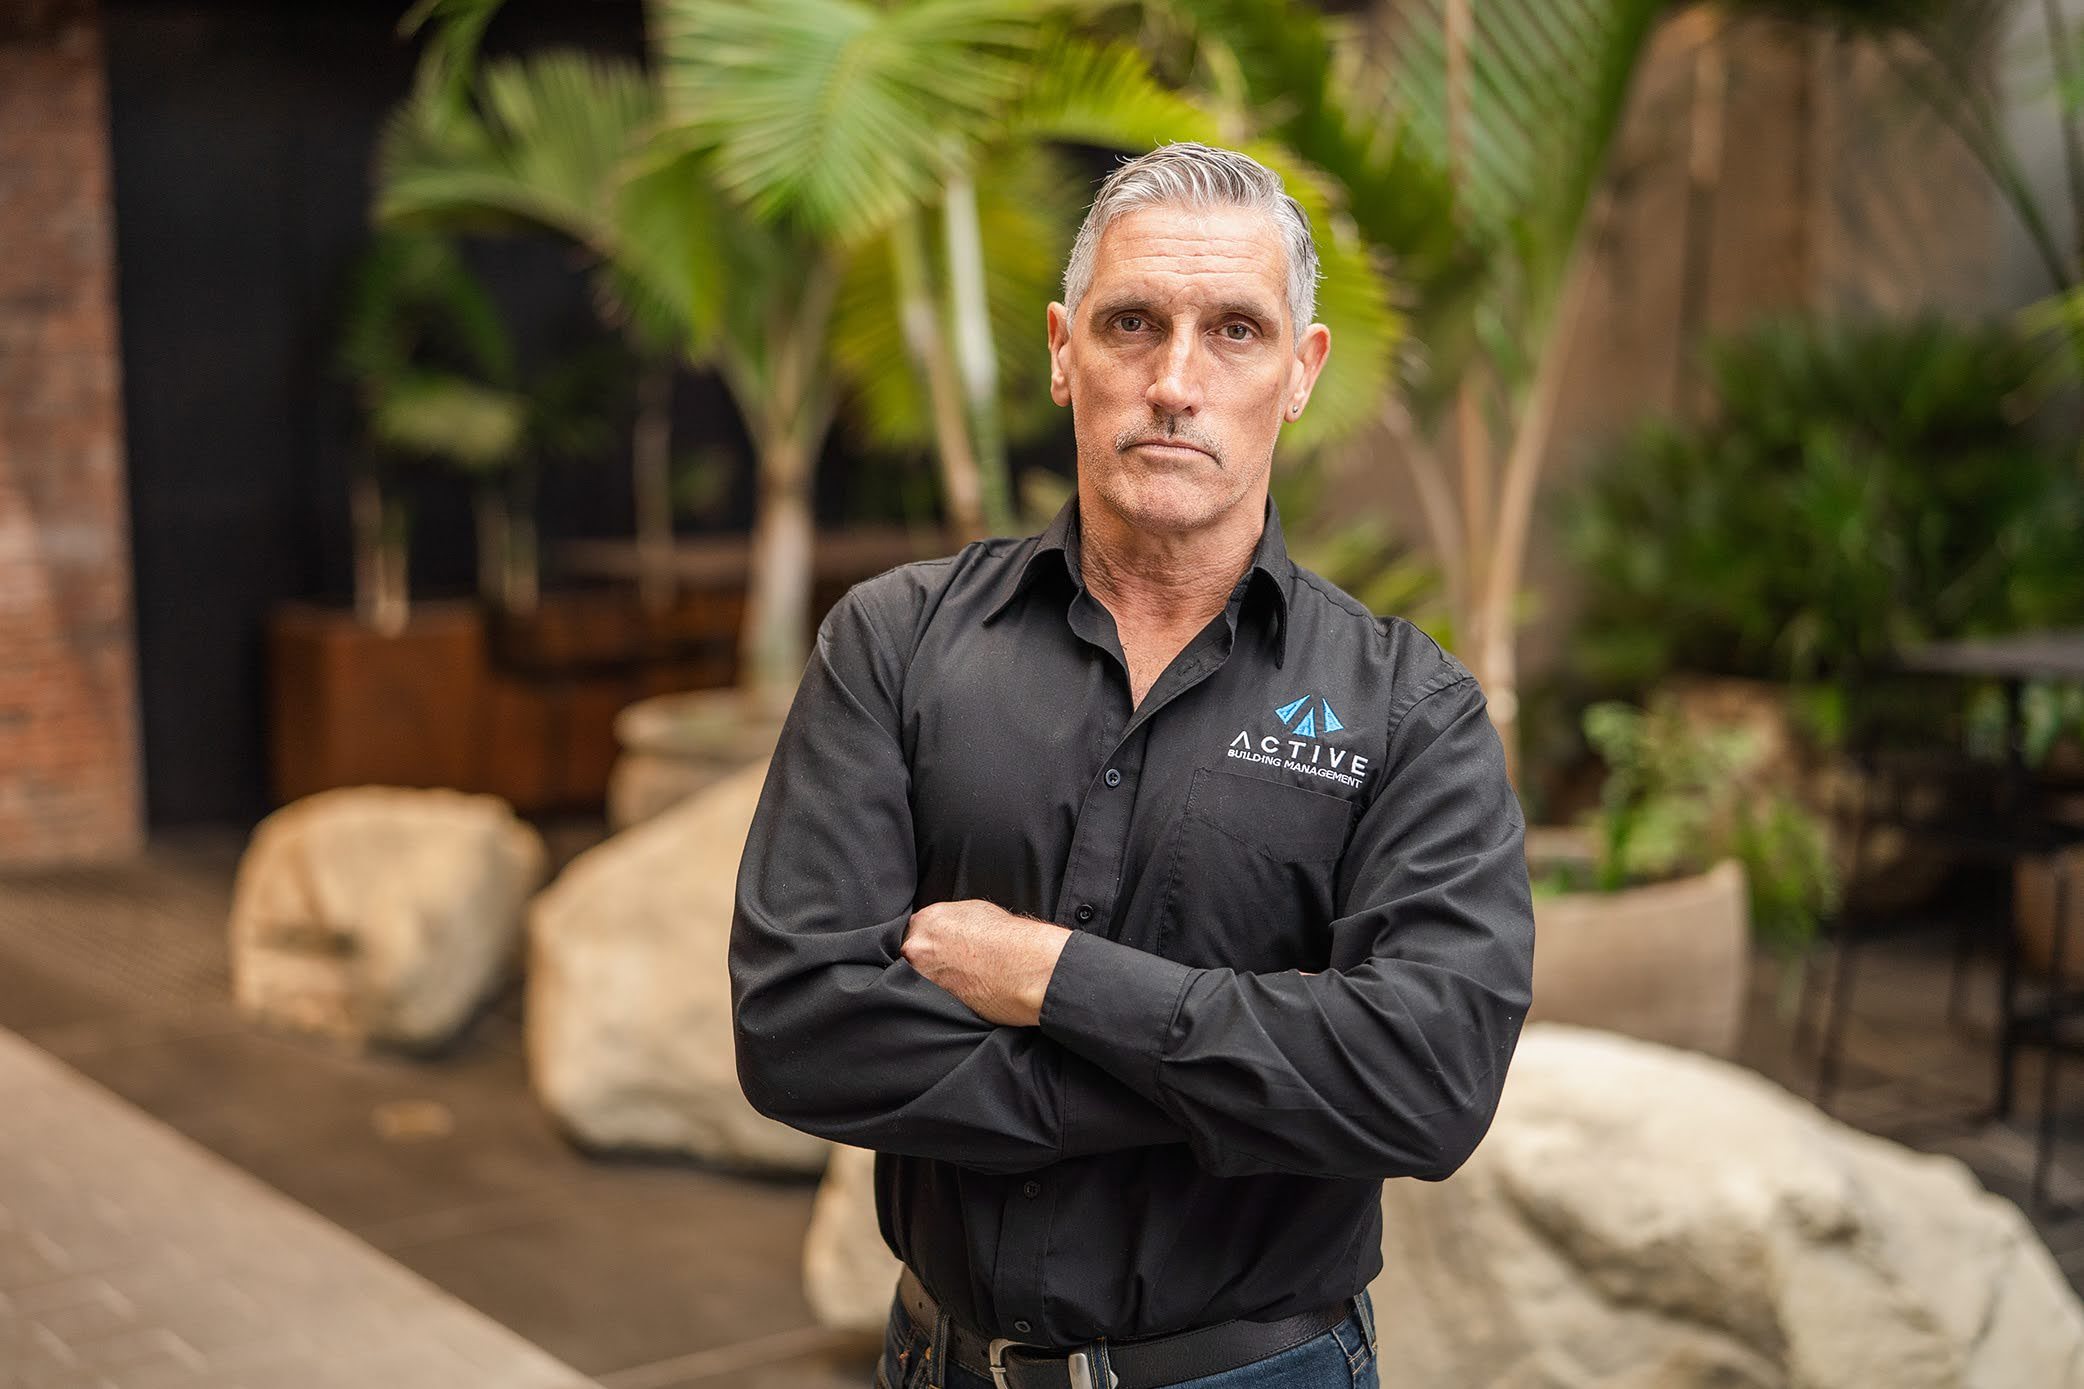 Brent - Active Building Manager